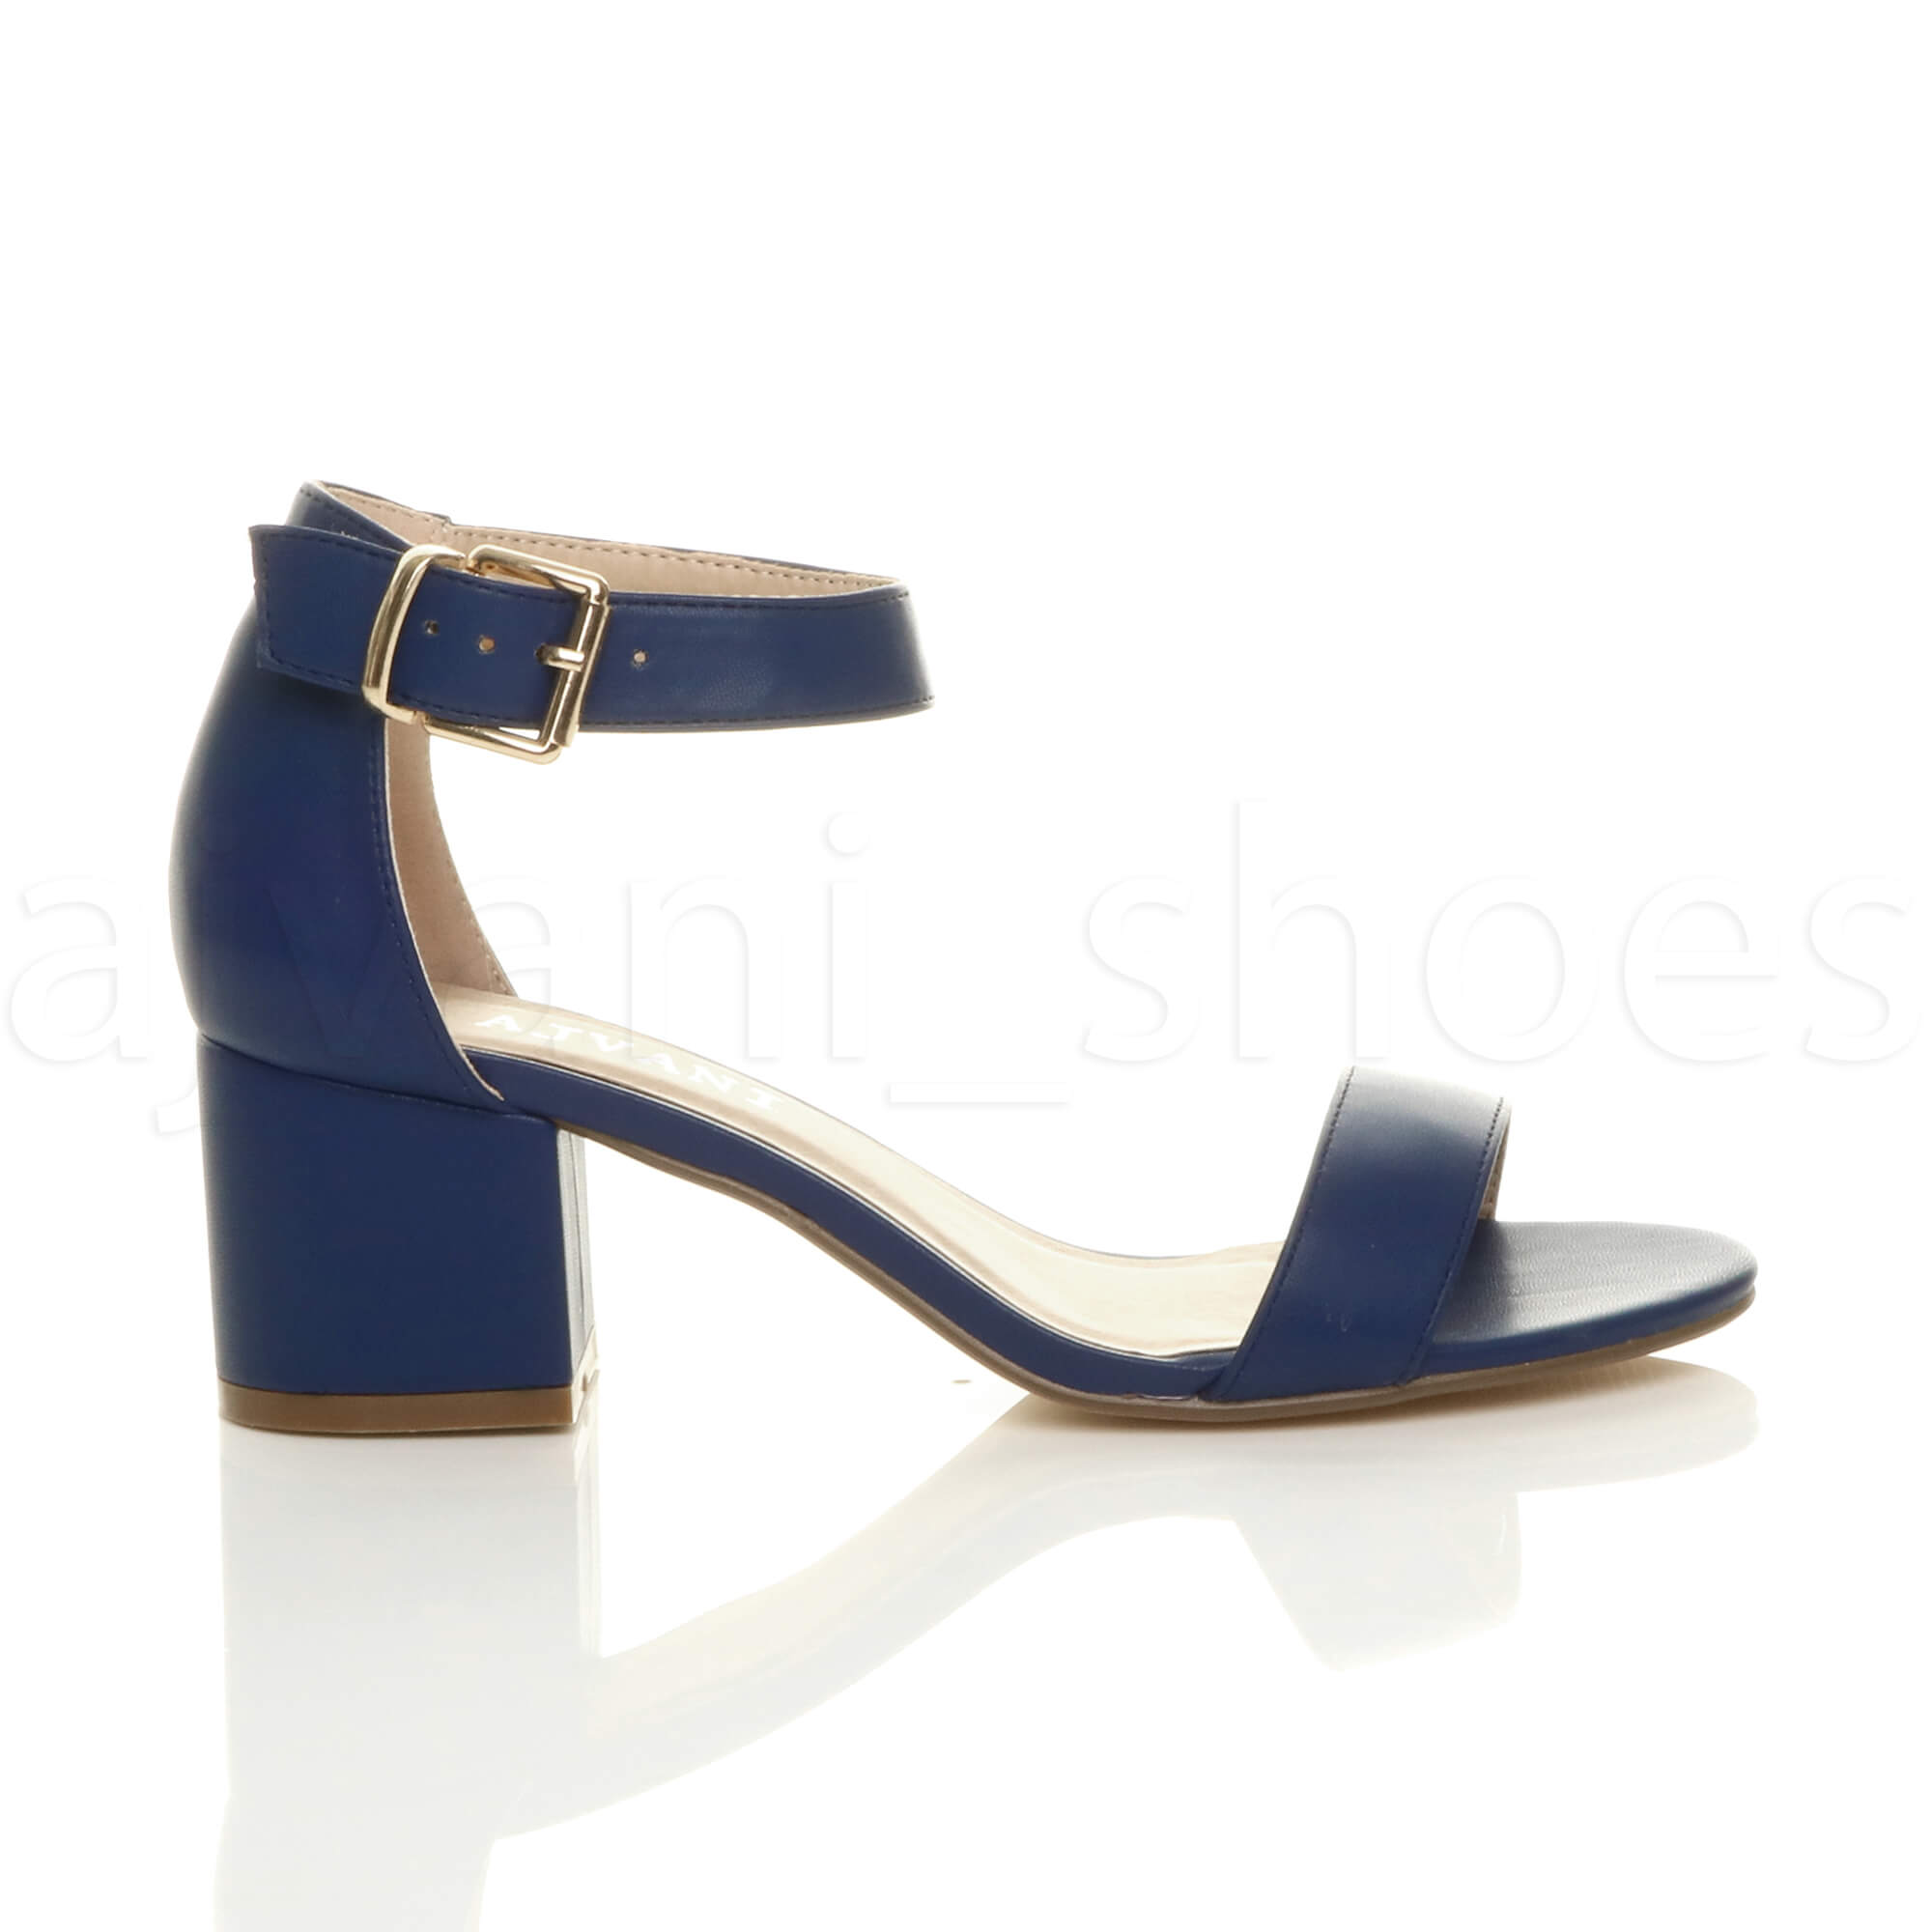 WOMENS-LADIES-LOW-MID-BLOCK-HEEL-ANKLE-STRAP-BUCKLE-PARTY-STRAPPY-SANDALS-SIZE thumbnail 113